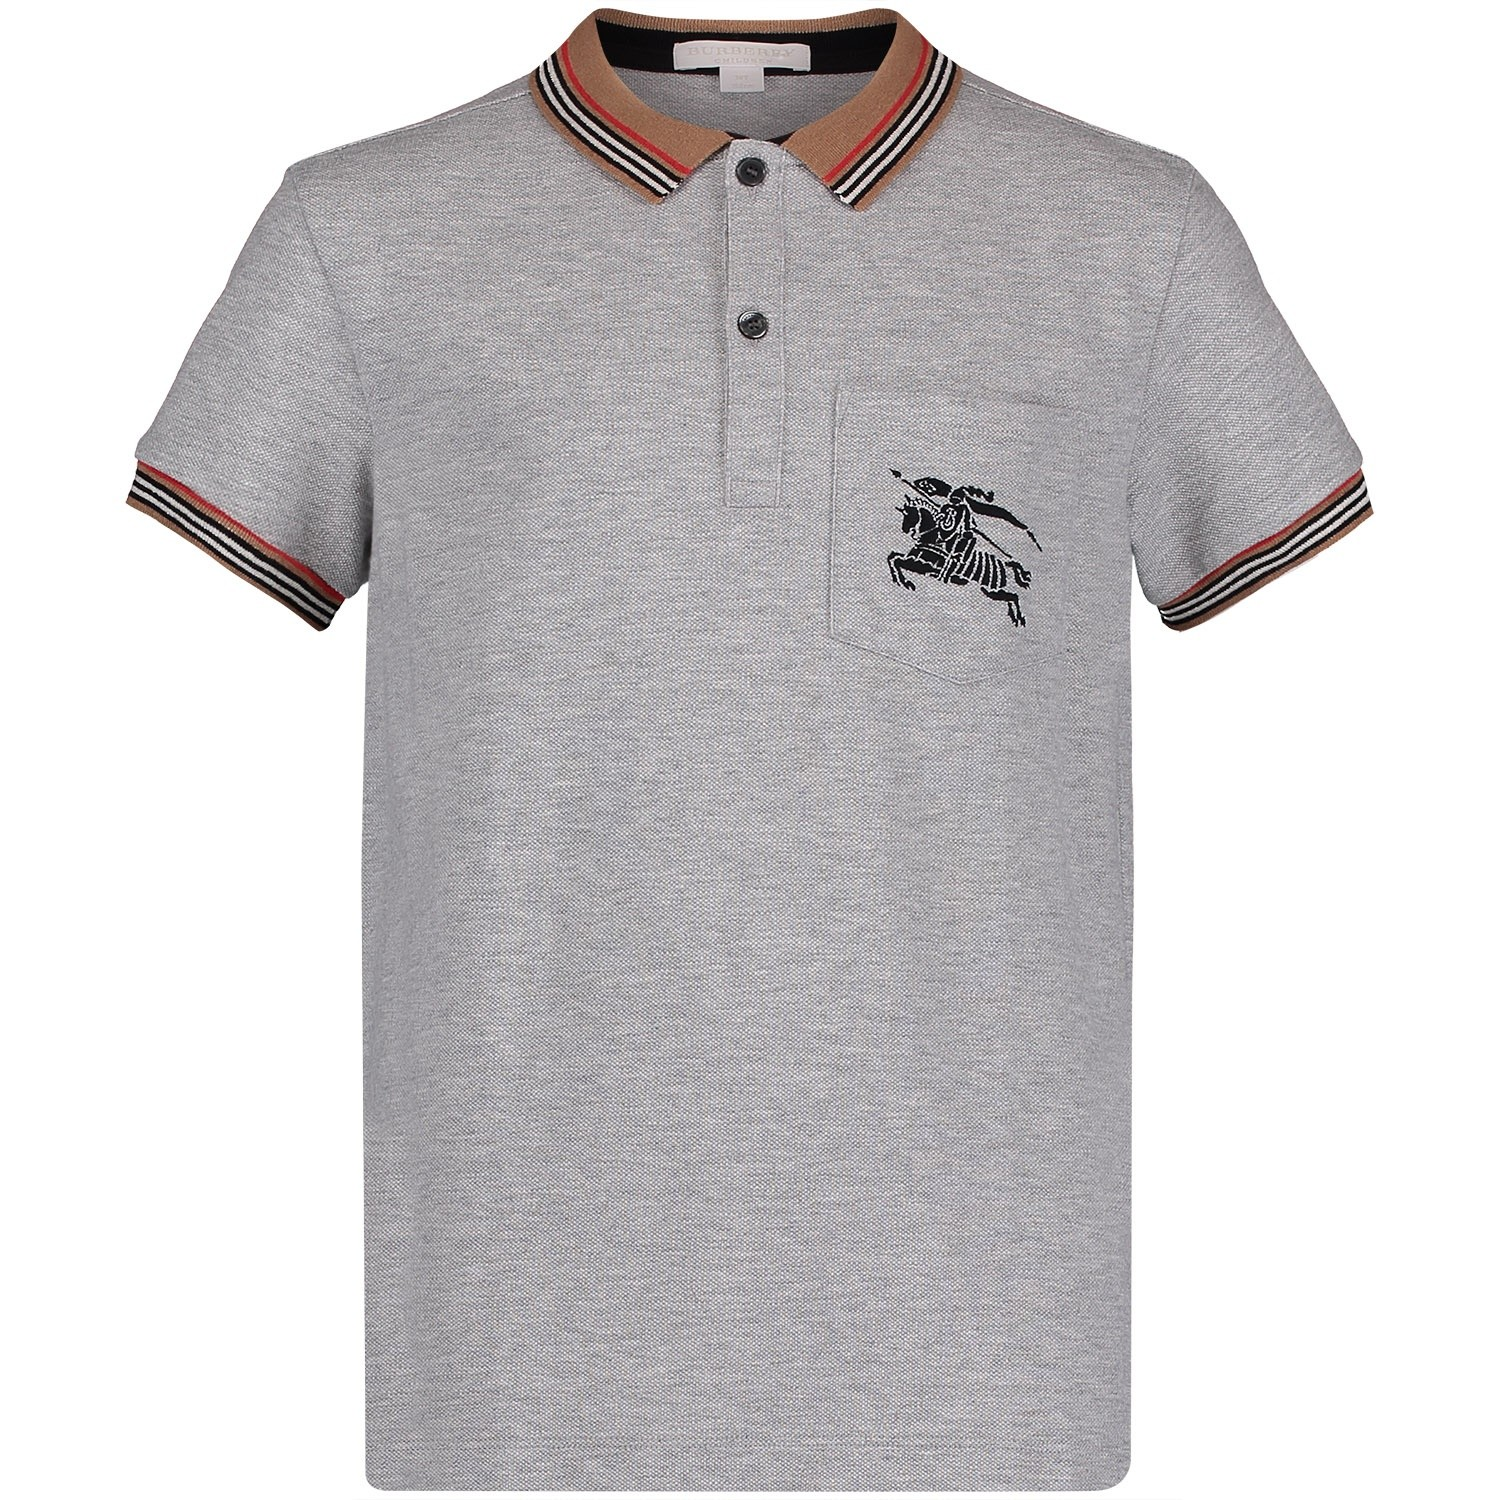 Picture of Burberry 8002002 kids polo shirt grey 1b606d60e